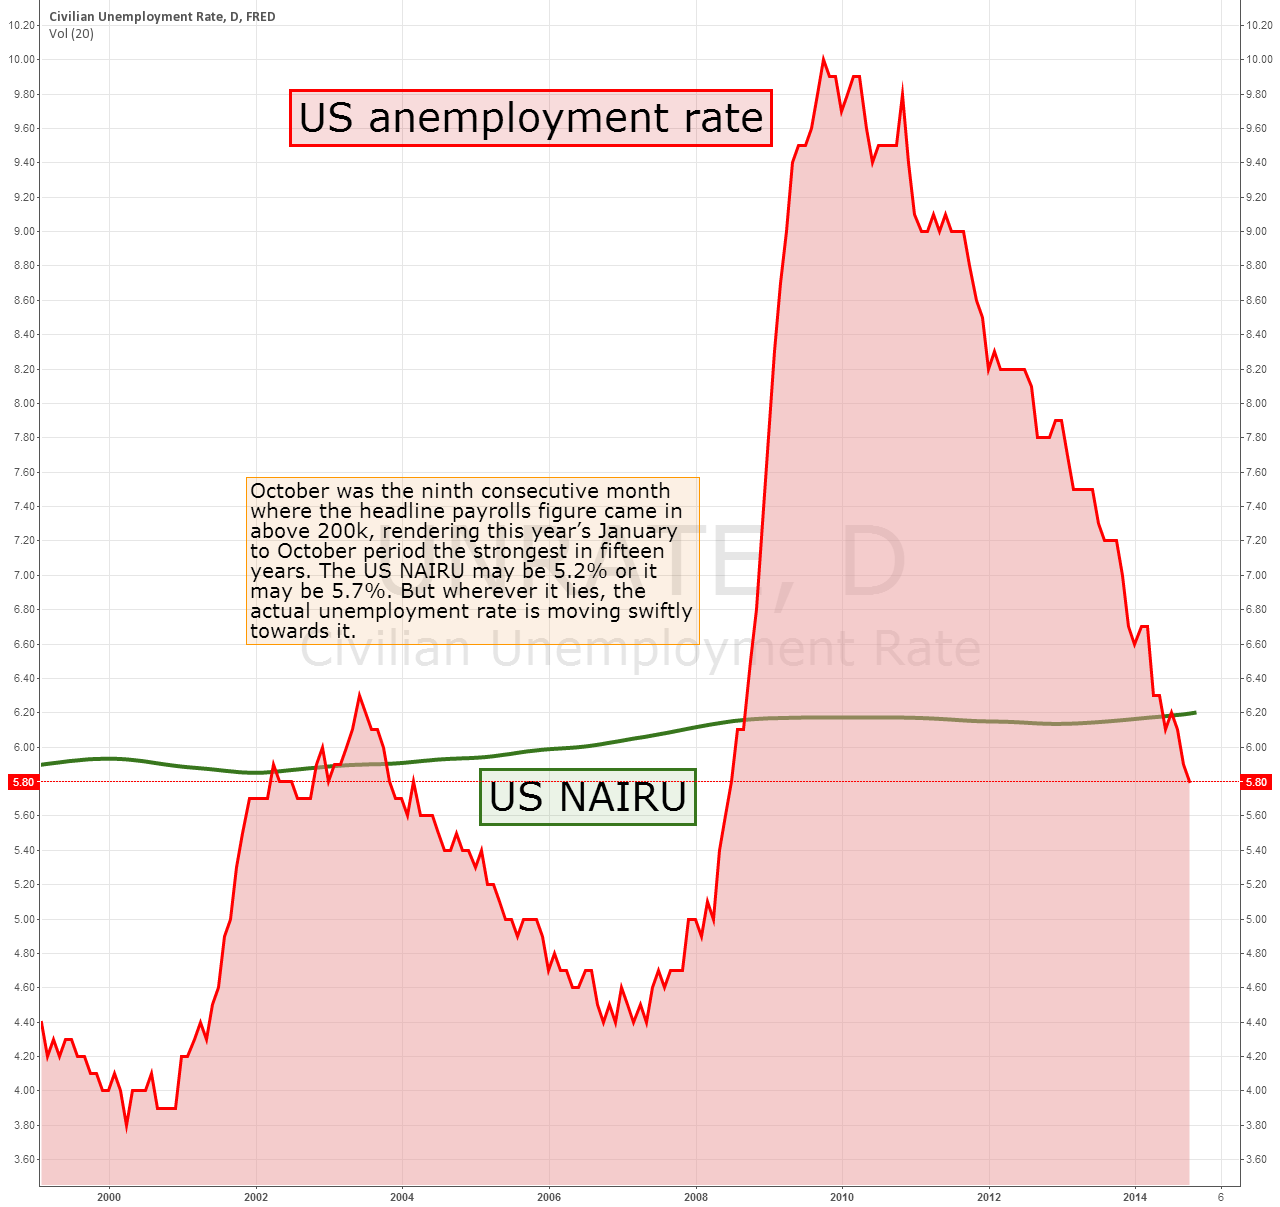 UNEMPLOYMENT RATE NOW WITHIN TOUCHING DISTANCE OF NAIRU ESTIMATE